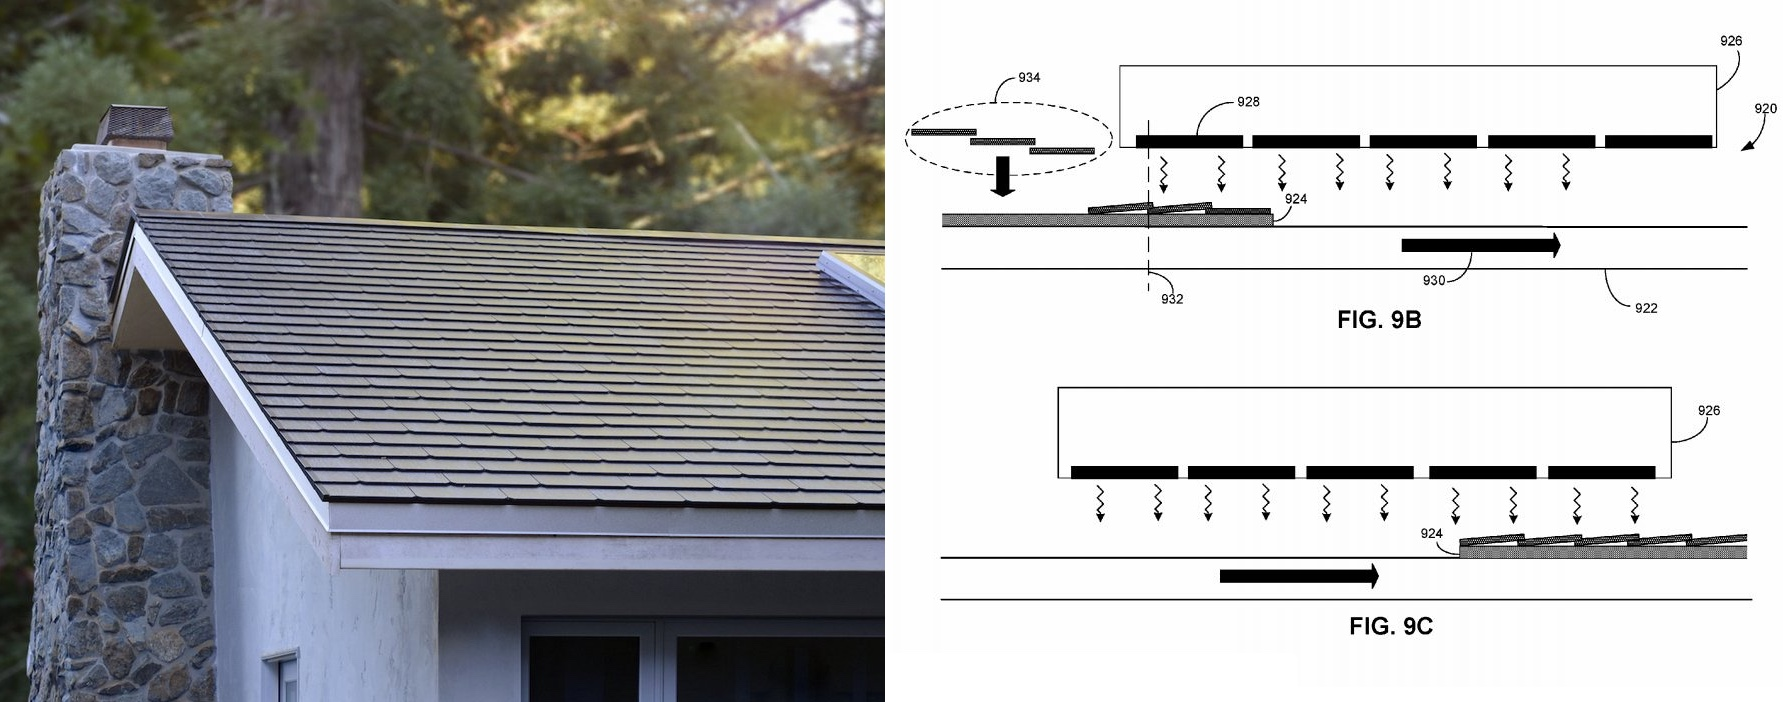 Tesla Solar Roof Tile Connector System Explained In New